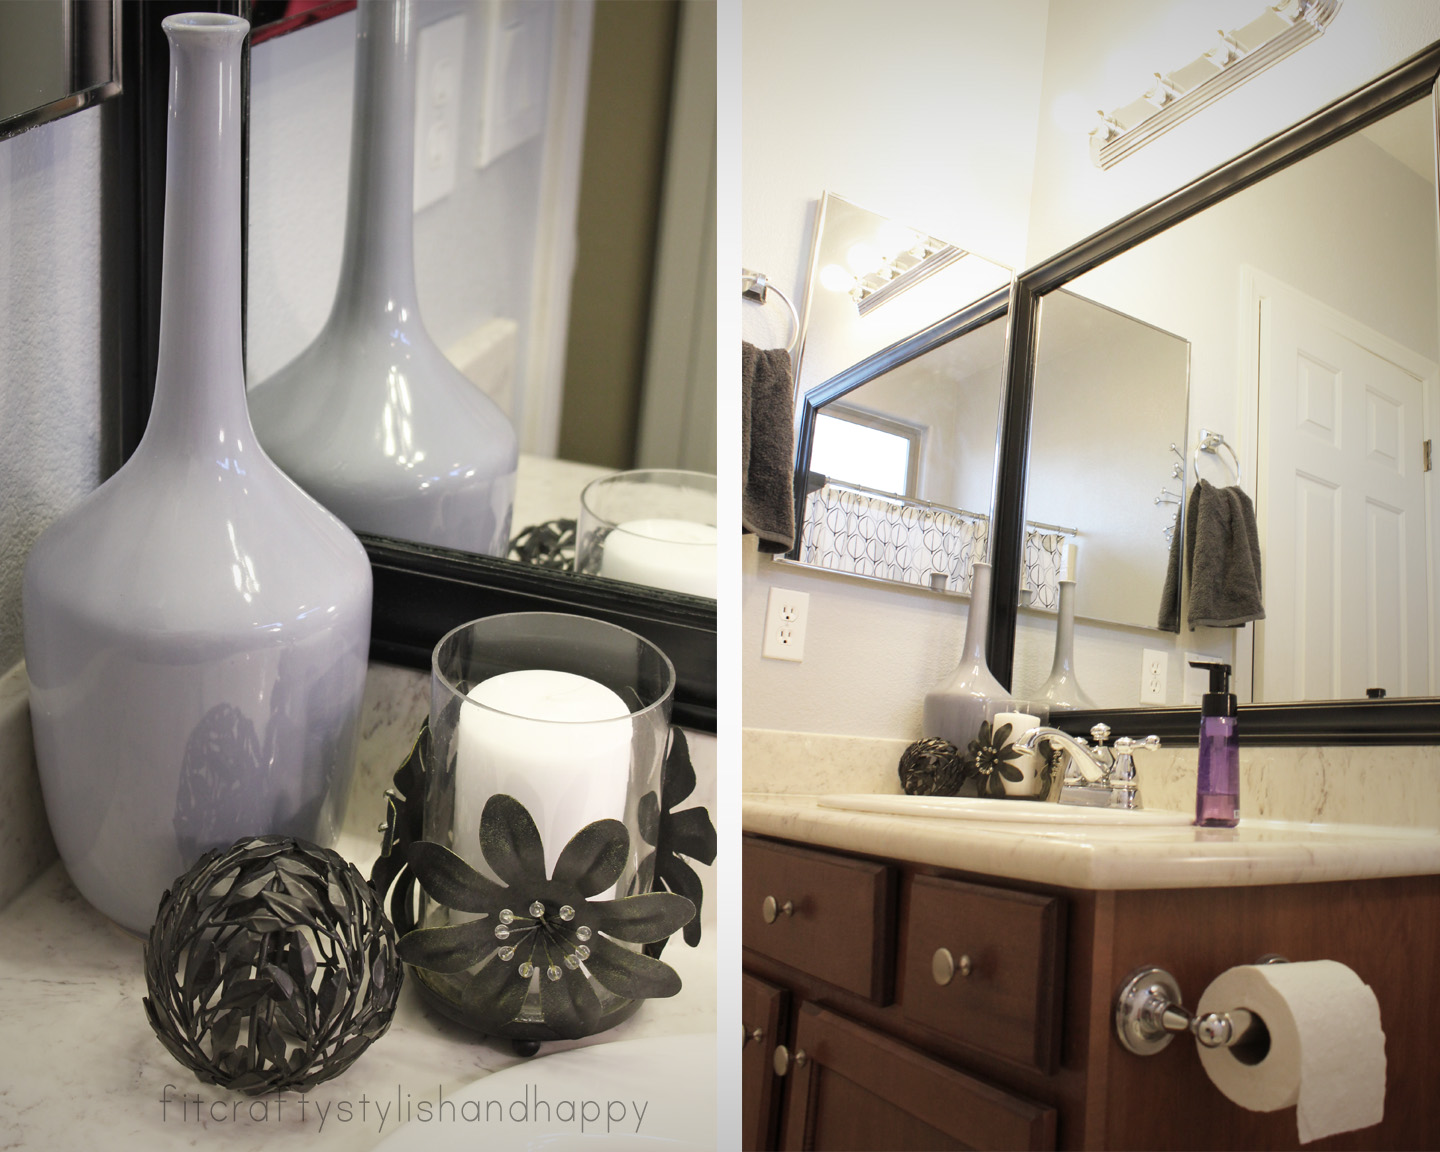 Fit crafty stylish and happy guest bathroom makeover for Bathroom decor ideas